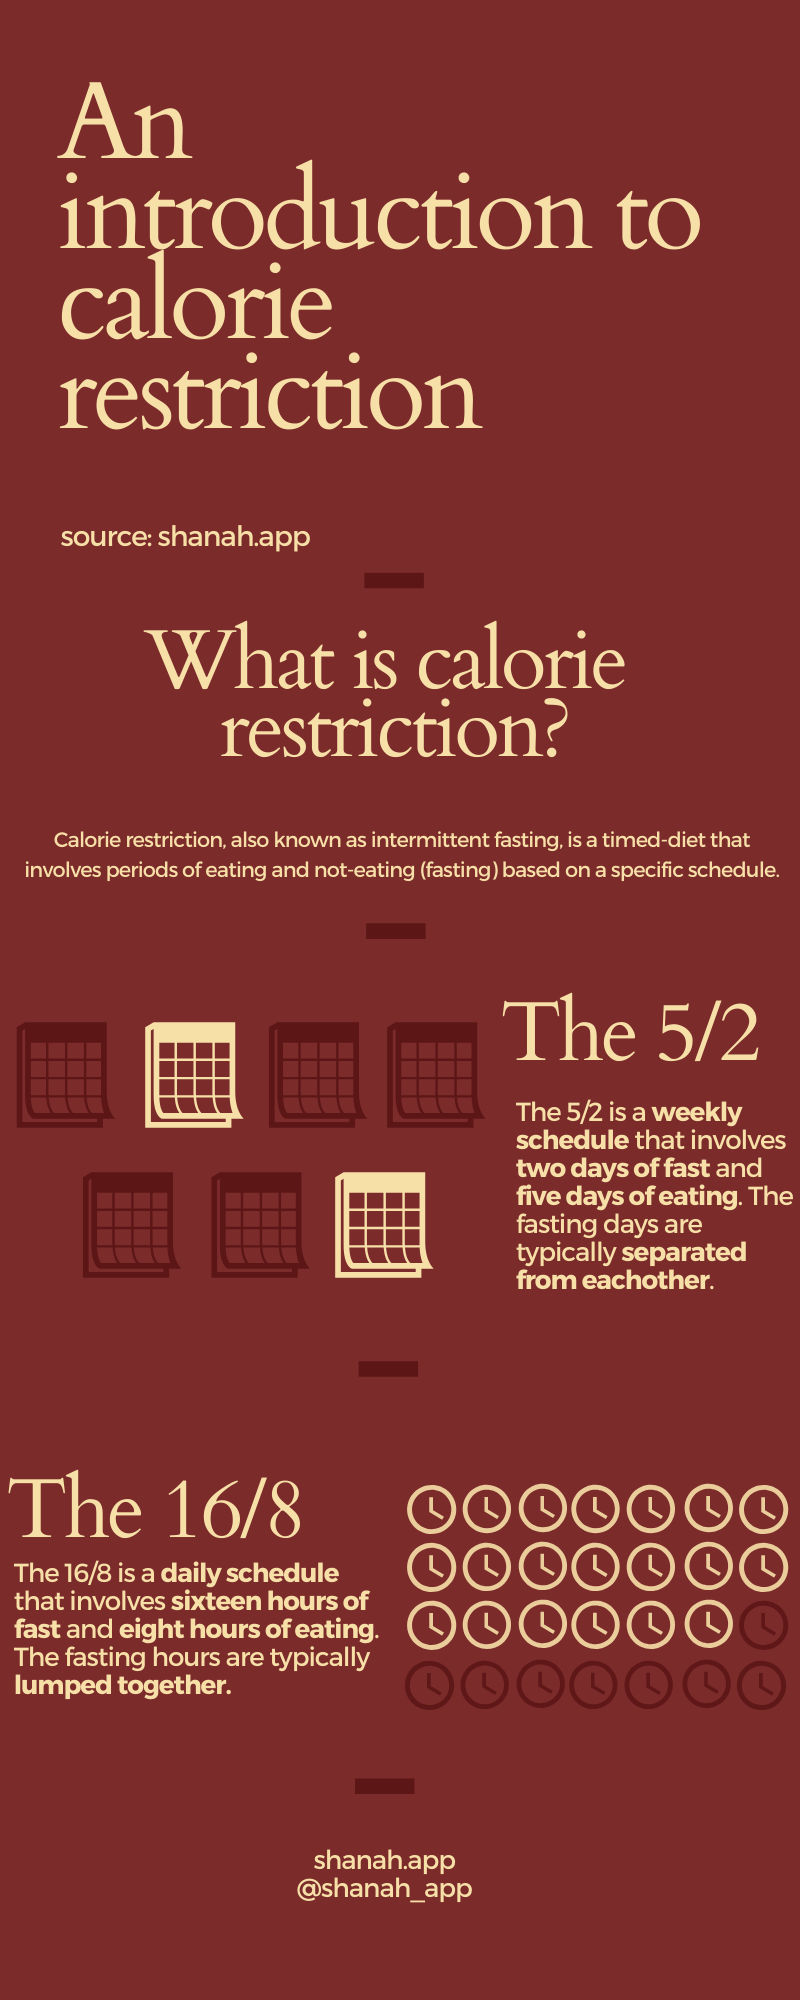 Here's the Calorie Restriction Infographic